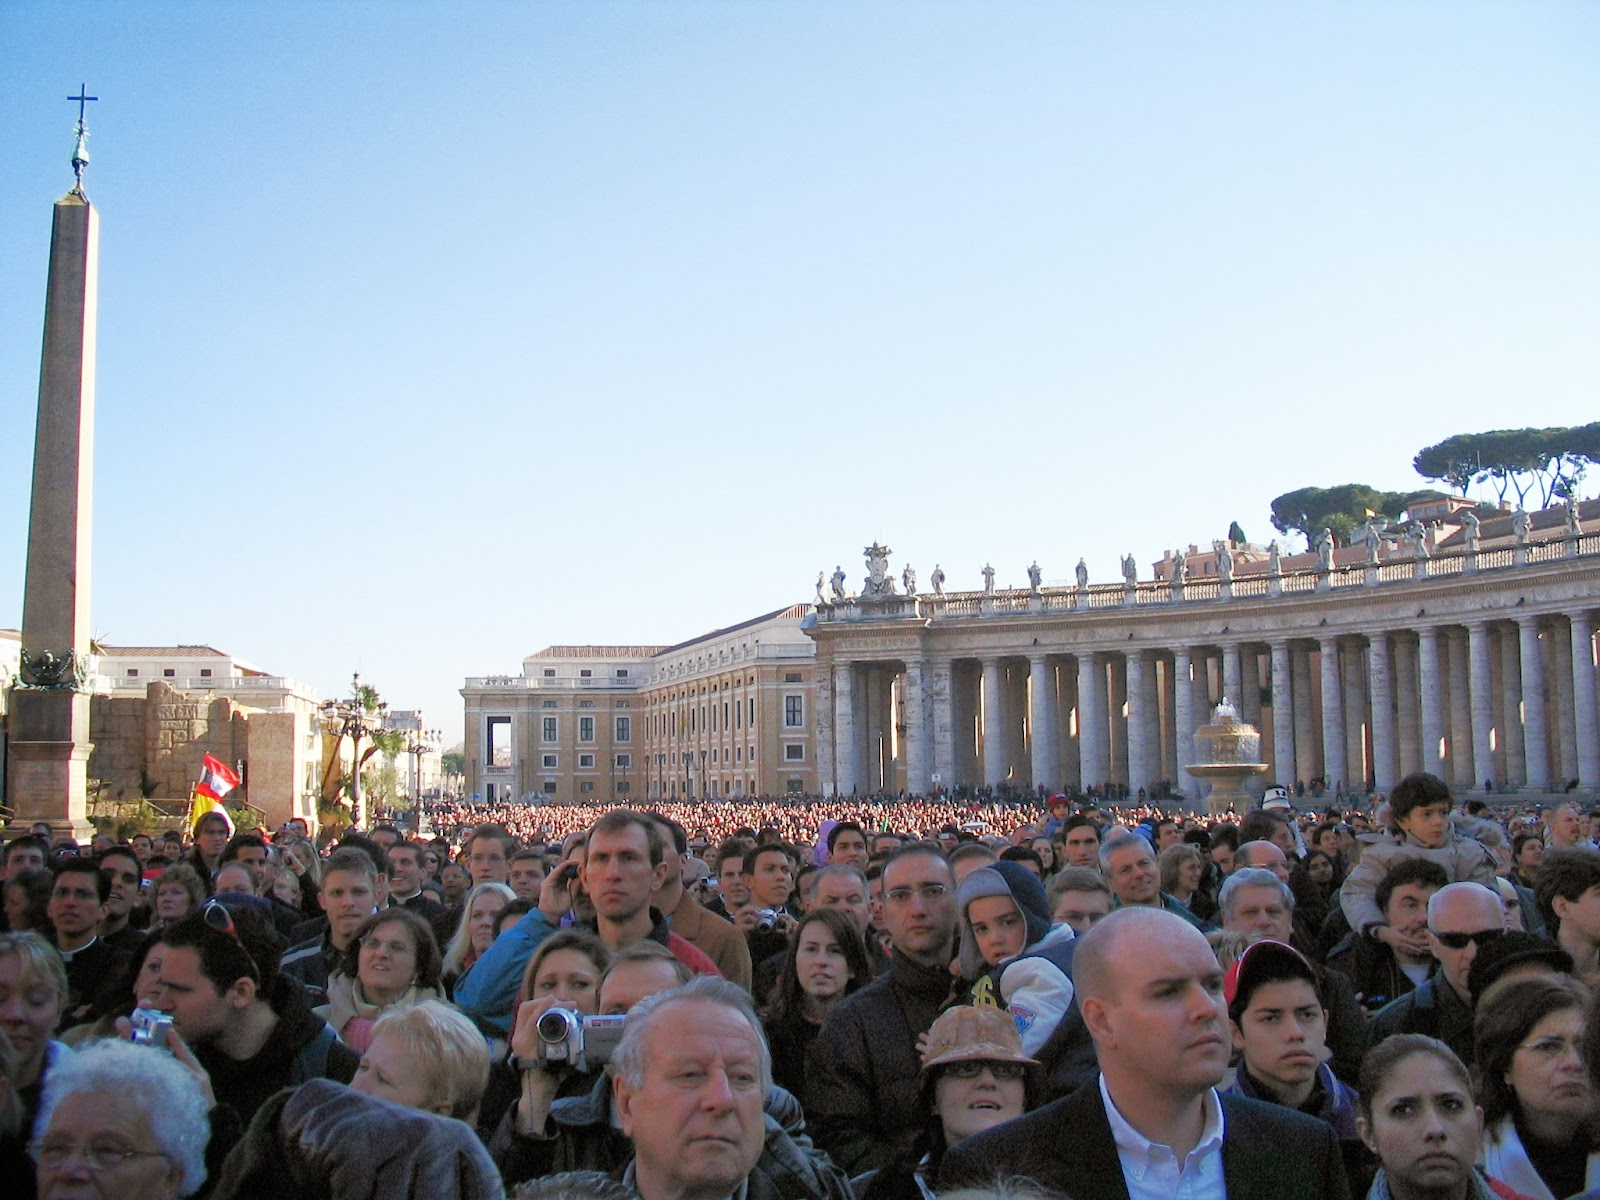 Christmas Day crowd in St Peters Square, Rome